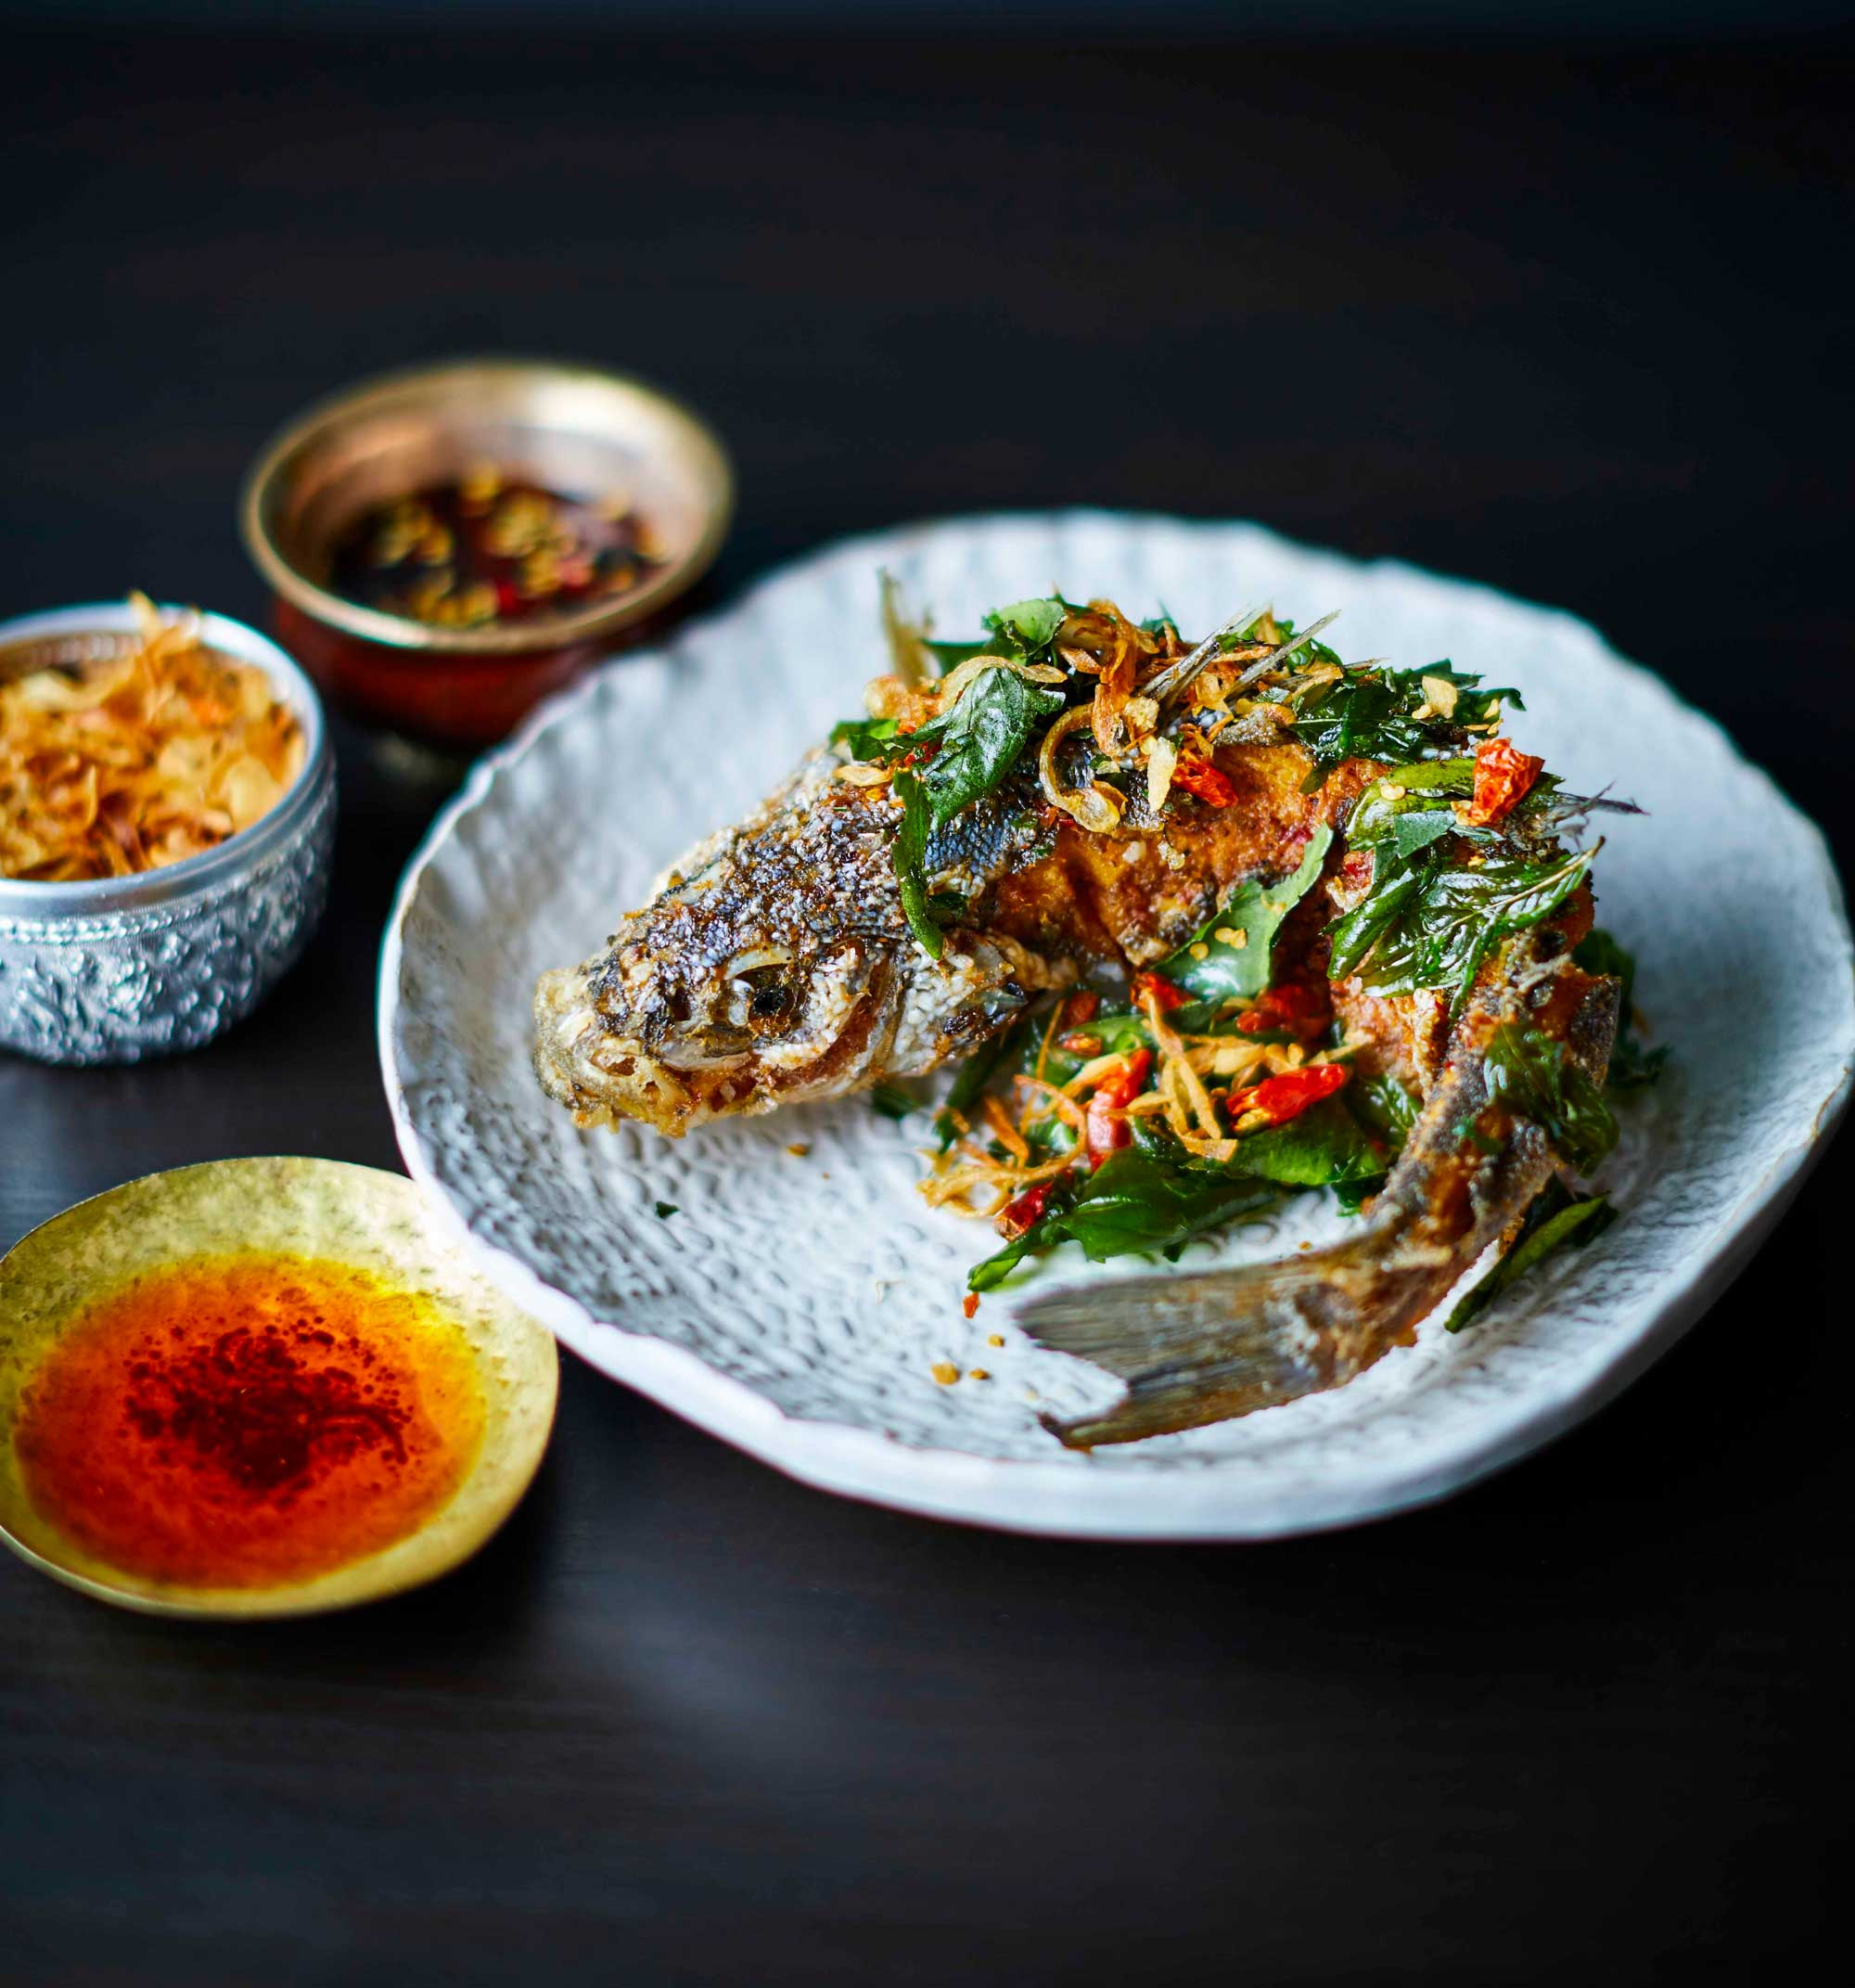 Crispy Seabass with Sour Fruits & Nham Jim